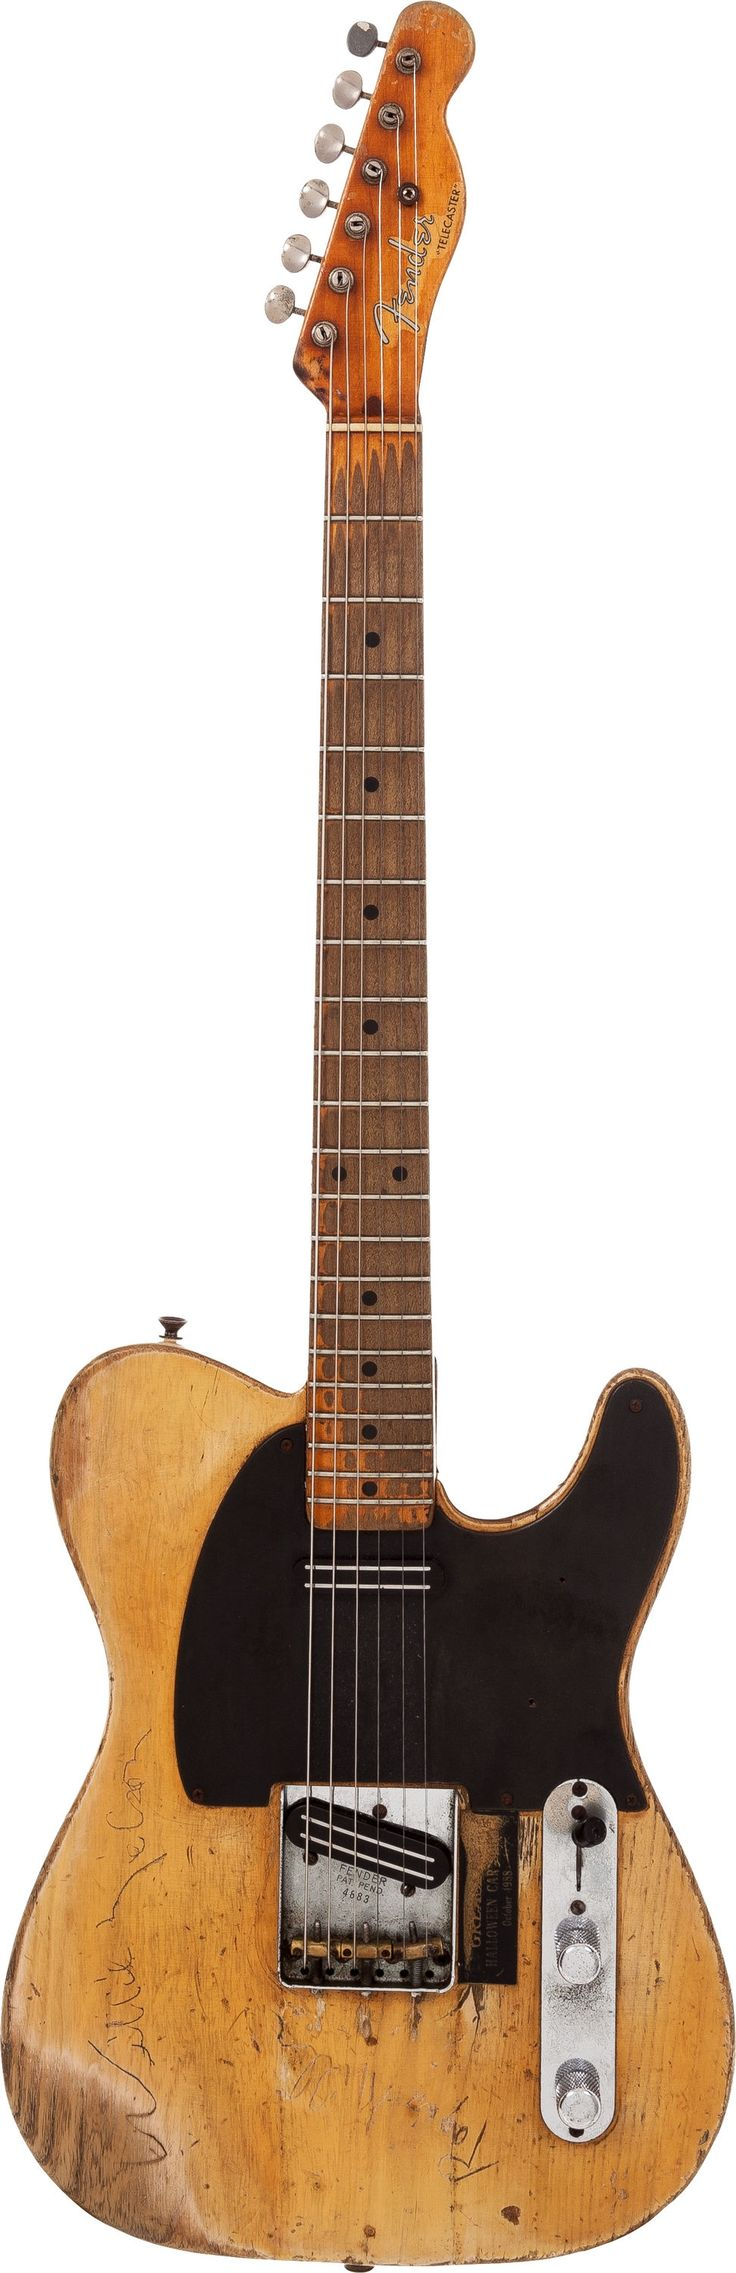 Danny Gatton's 1953 Fender Telecaster Blonde Solid Body | Lot #85127 | Heritage Auctions